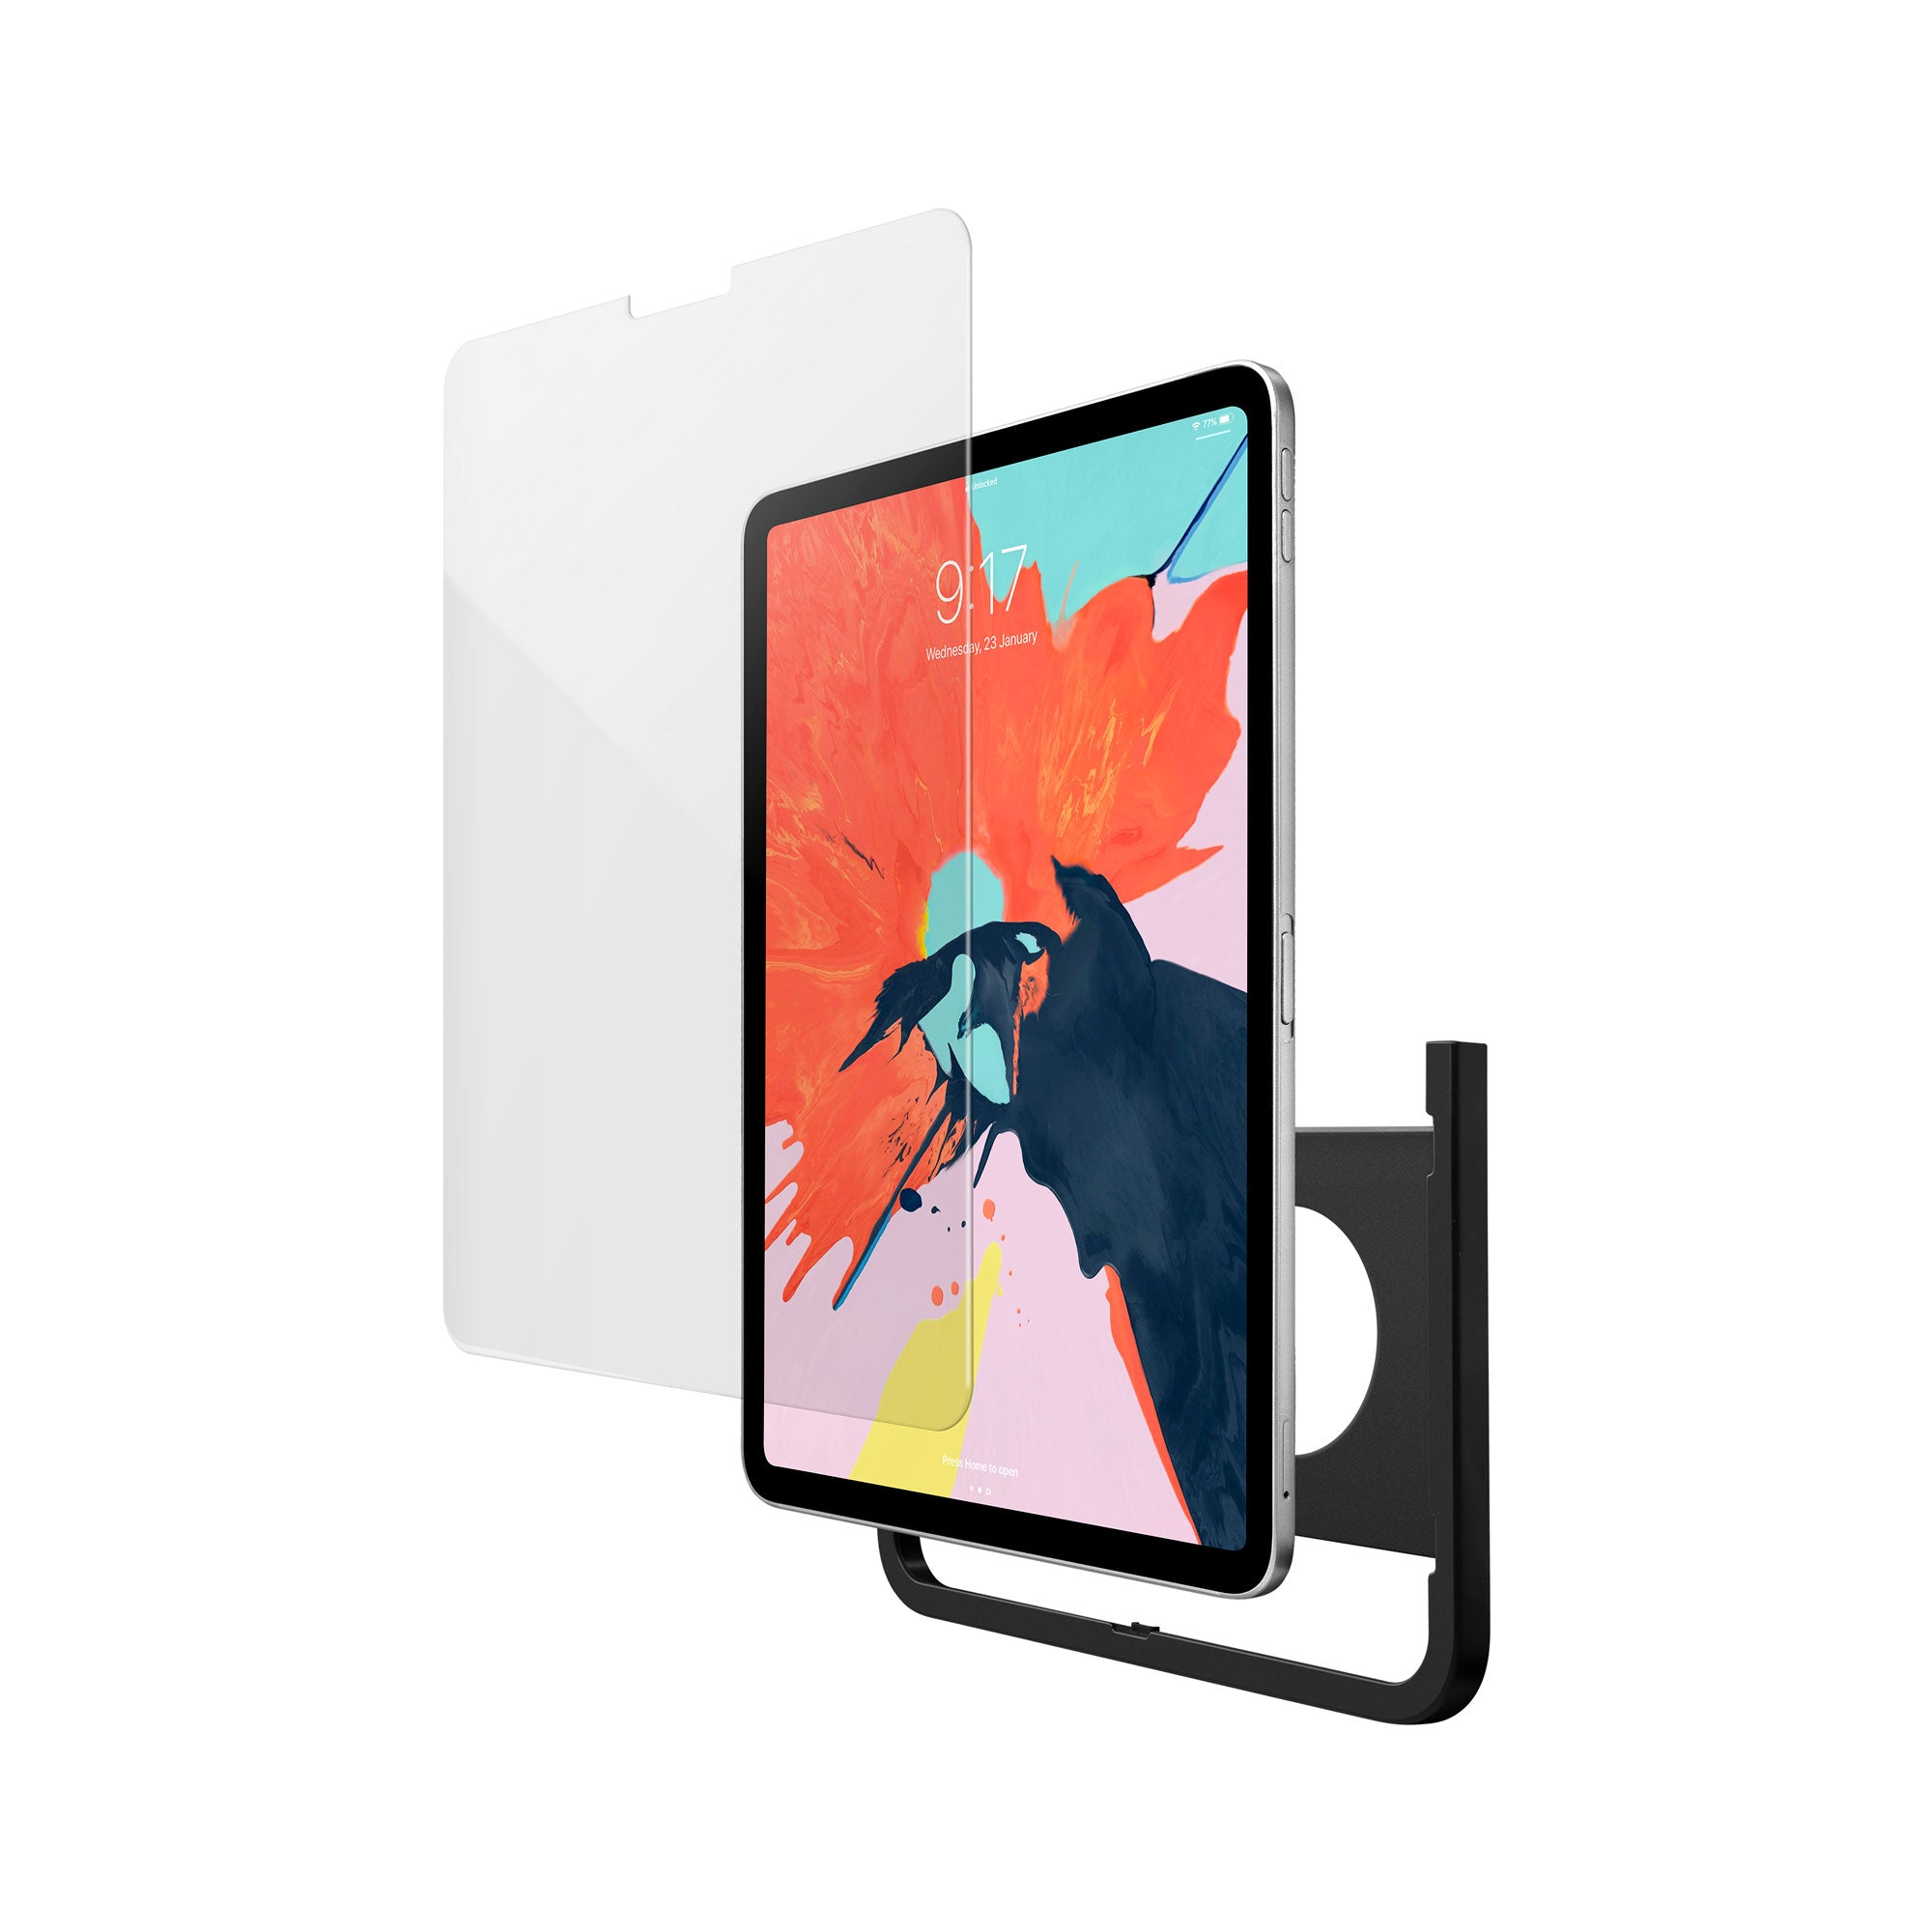 PRIME Glass for iPad Pro 12.9-inch (Late 2018)